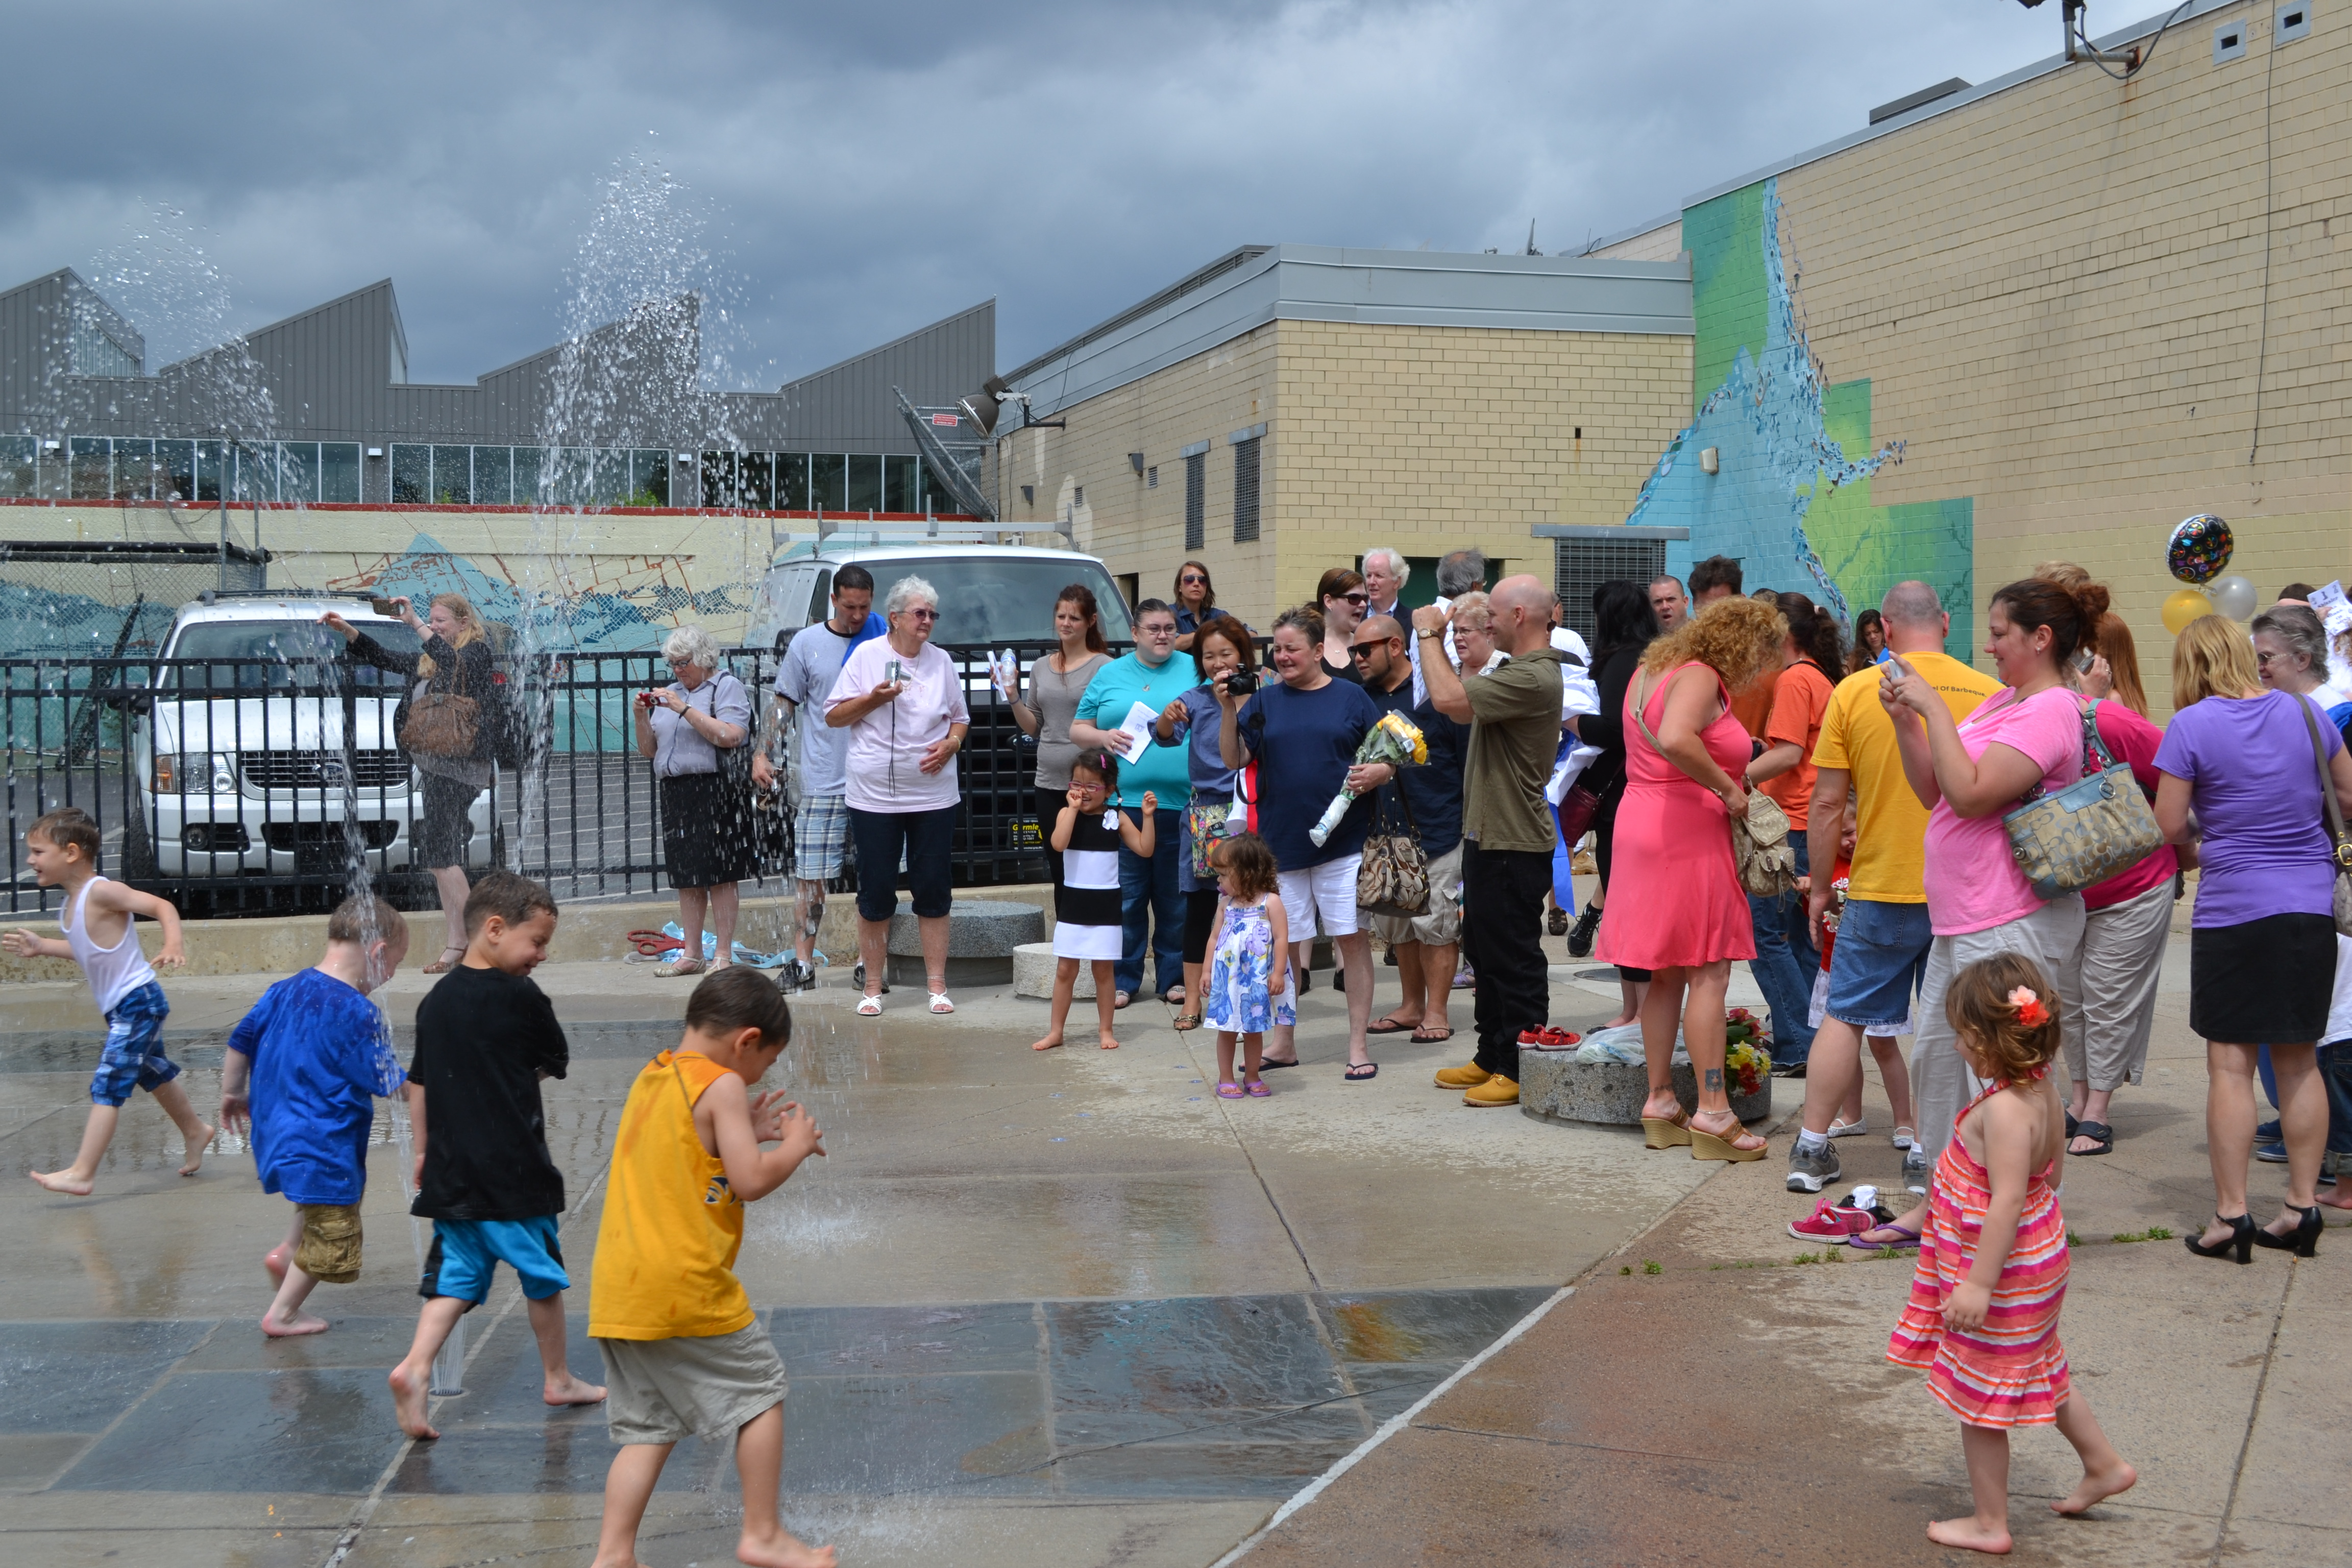 A new sprayground opened at the Shissler Rec Center Thursday